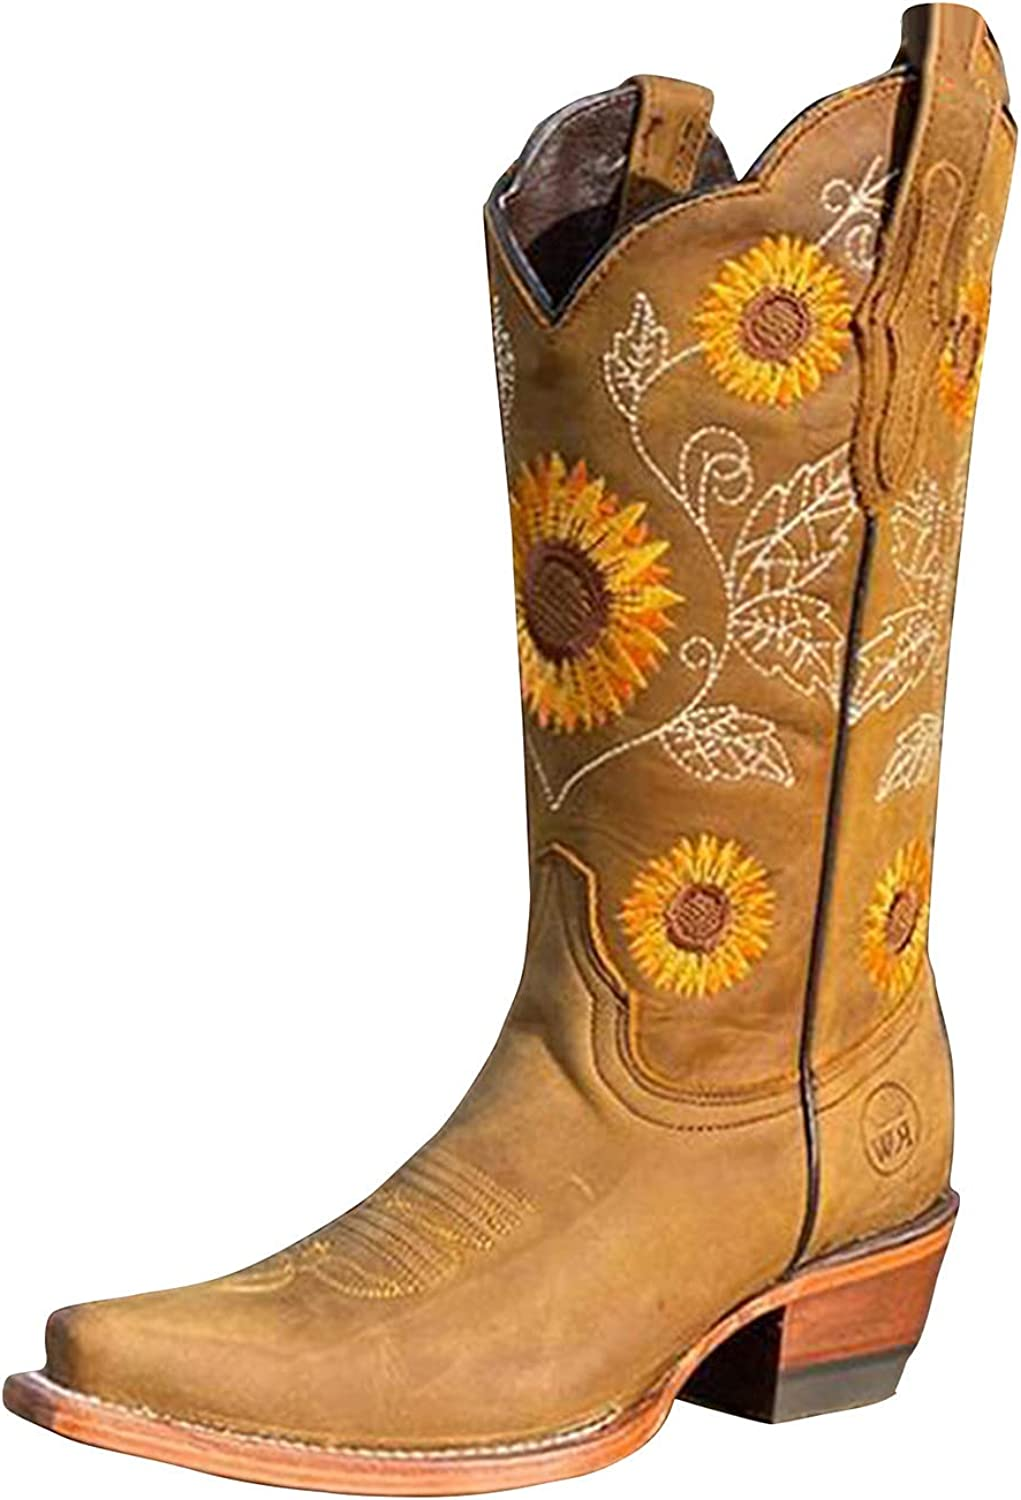 Western Boots for Women Sunflowers Embroidery Cowboy Boots Mid C